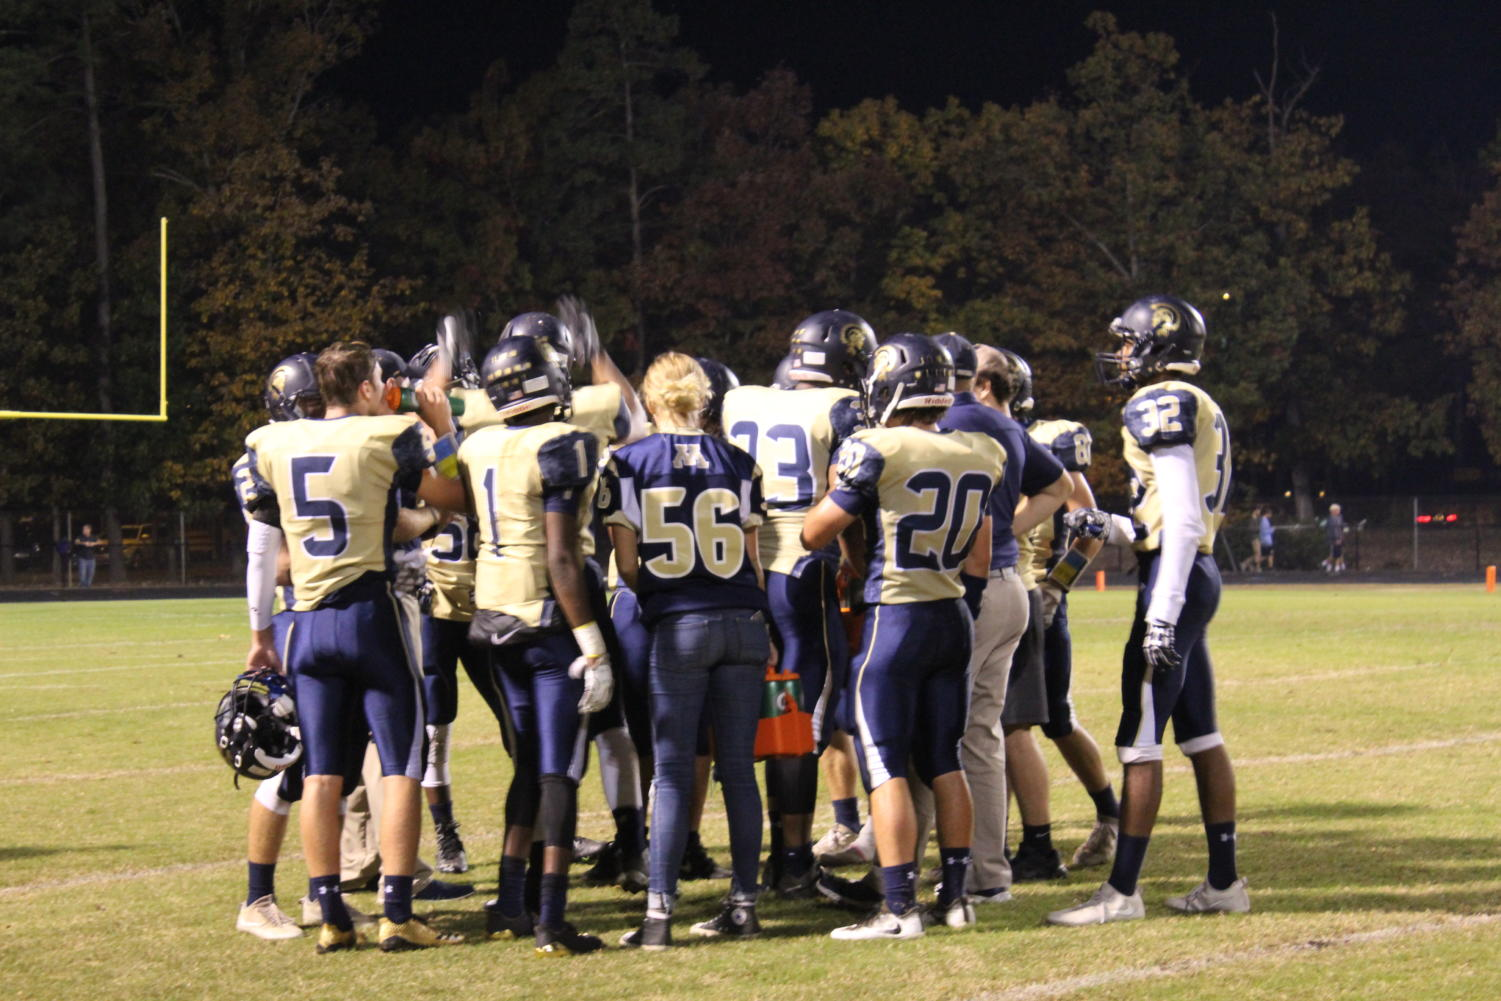 Midlo's starting offensive unit gathers in preparation for the big game ahead of them.